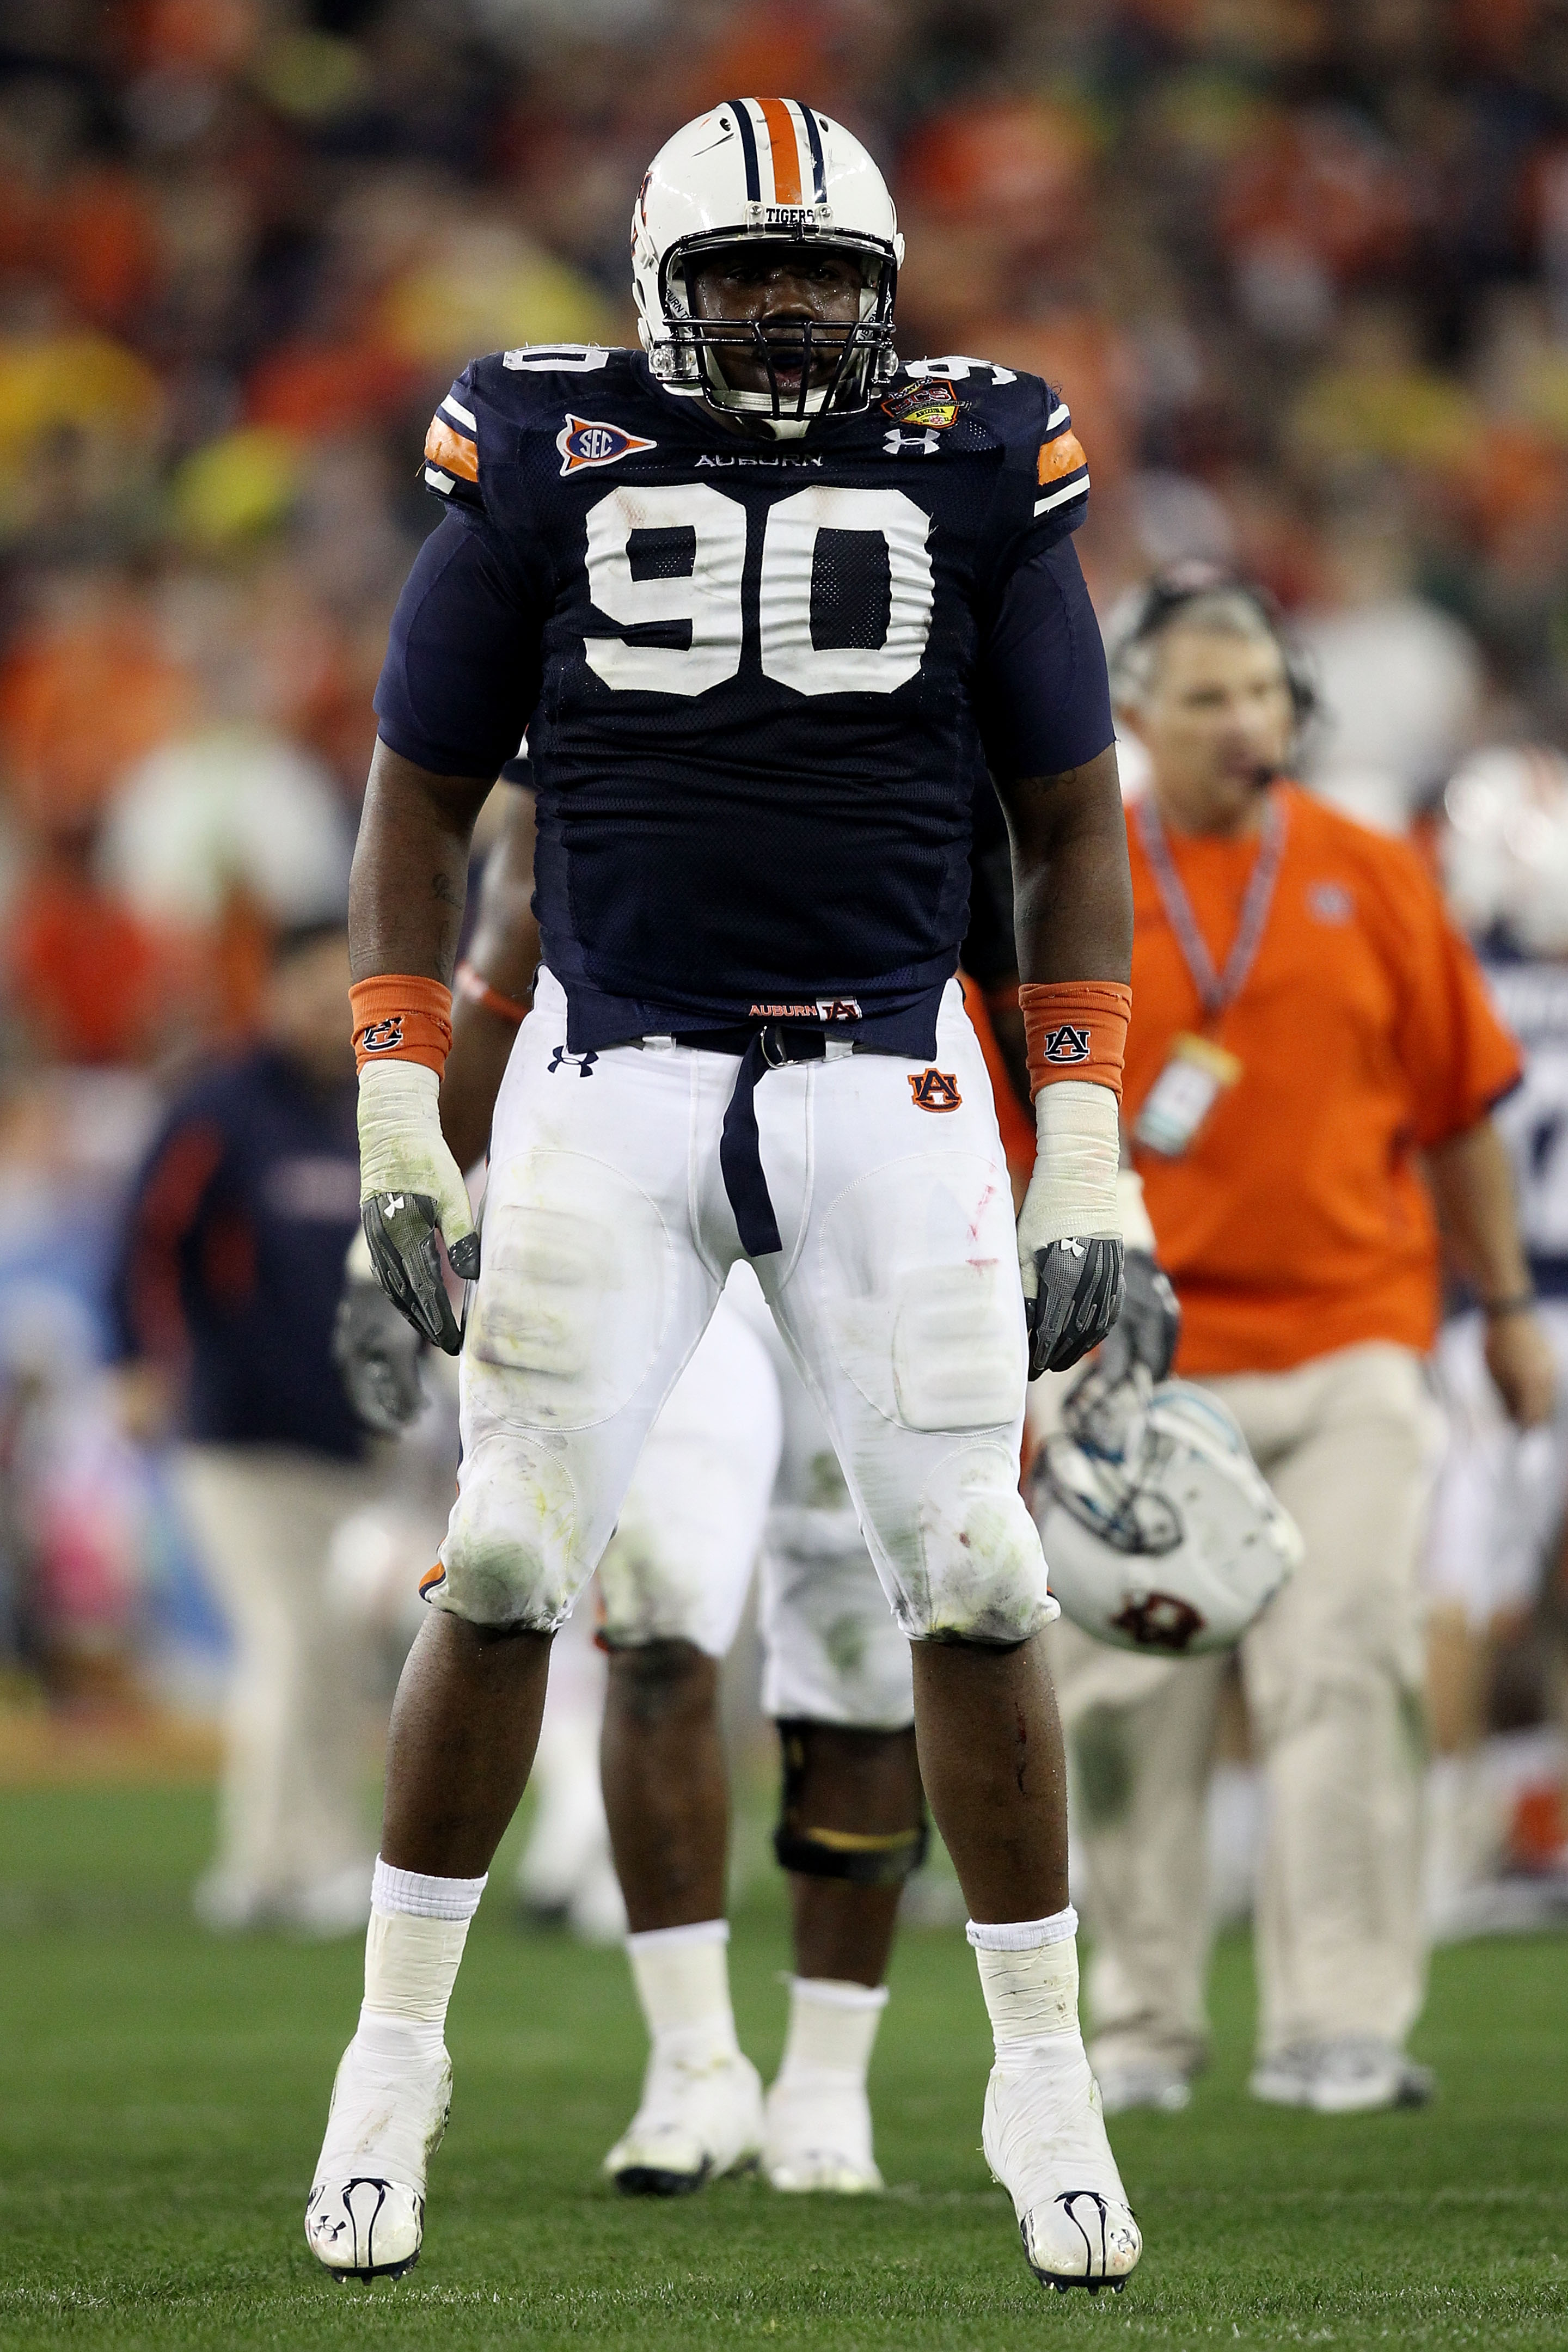 GLENDALE, AZ - JANUARY 10:  Nick Fairley #90 of the Auburn Tigers celebrates a sack against the Oregon Ducks during the Tostitos BCS National Championship Game at University of Phoenix Stadium on January 10, 2011 in Glendale, Arizona.  (Photo by Christian